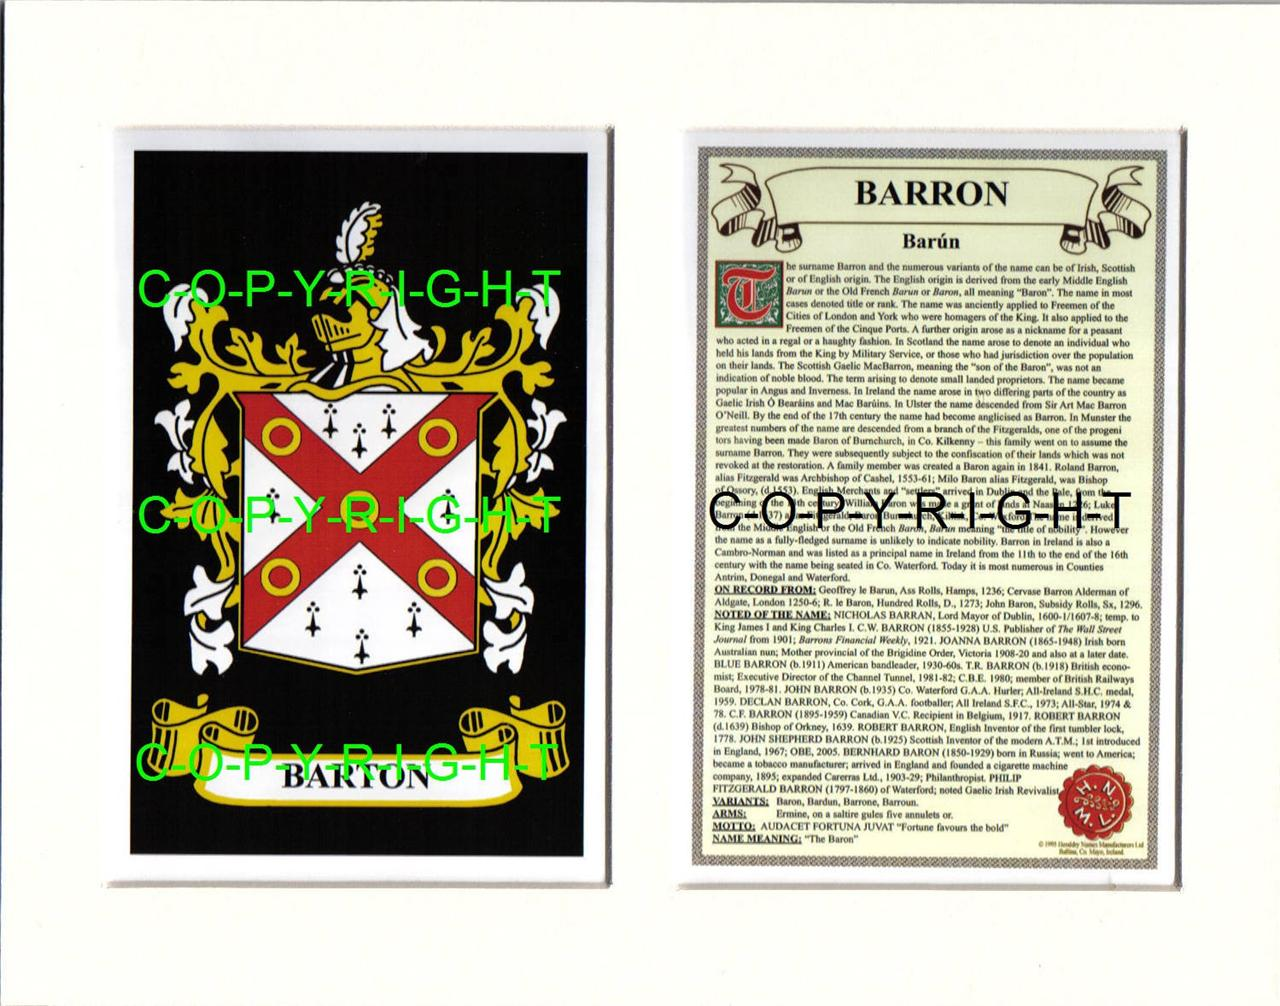 BARRON-Family-Coat-of-Arms-Crest-History-Available-Mounted-or-Framed